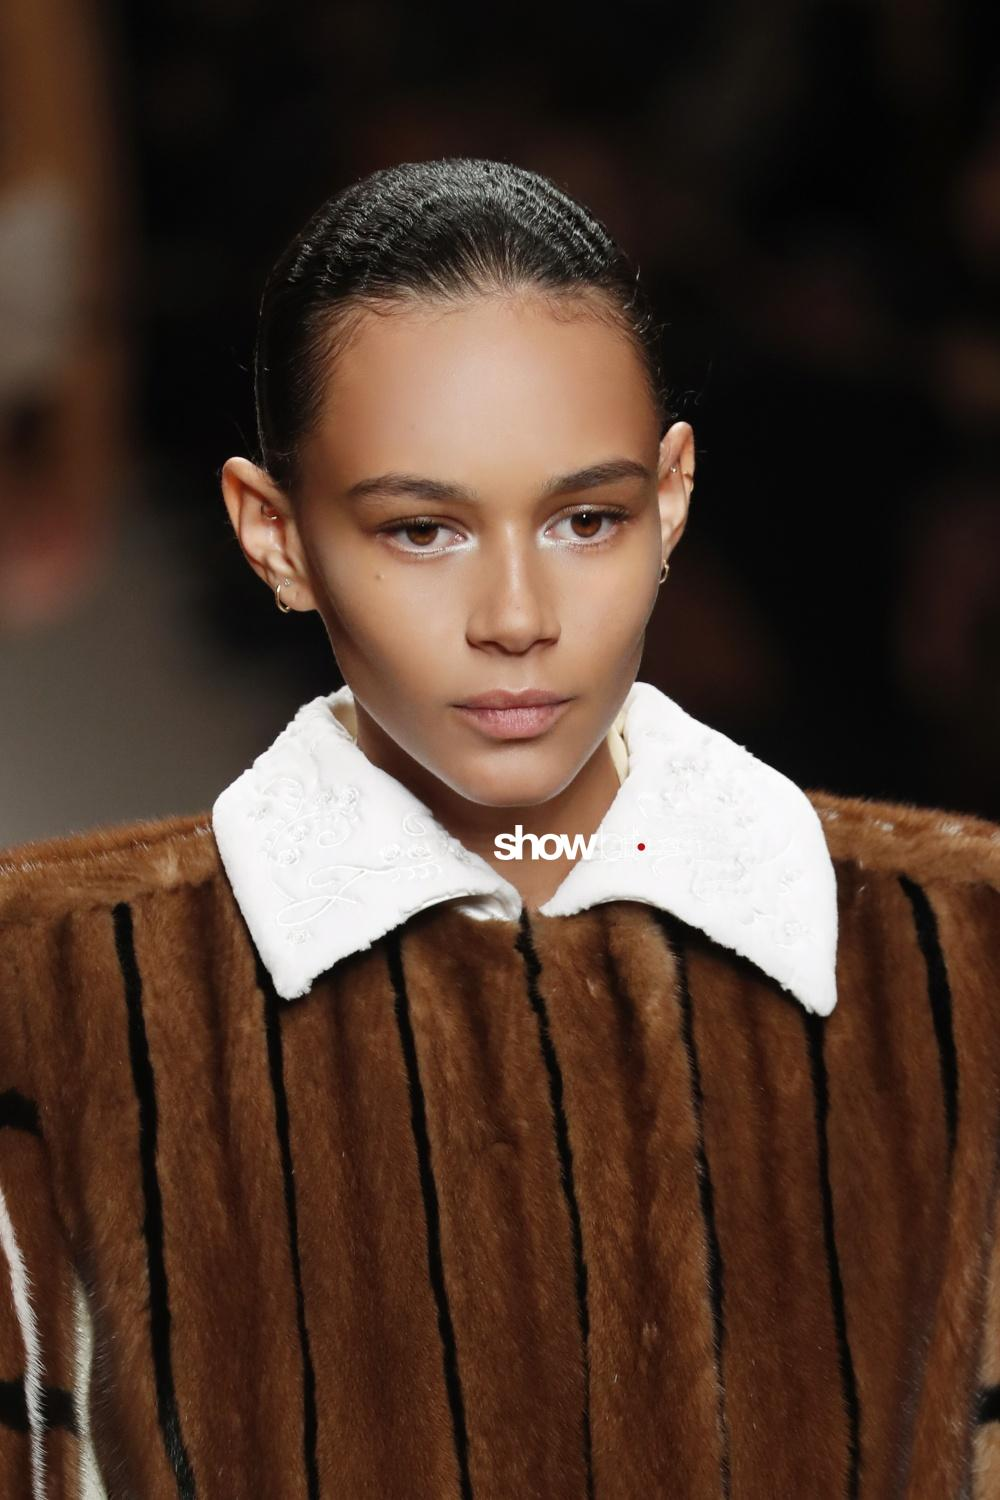 Fendi beauty runway Fall Winter 2018 Milano Binx Walton